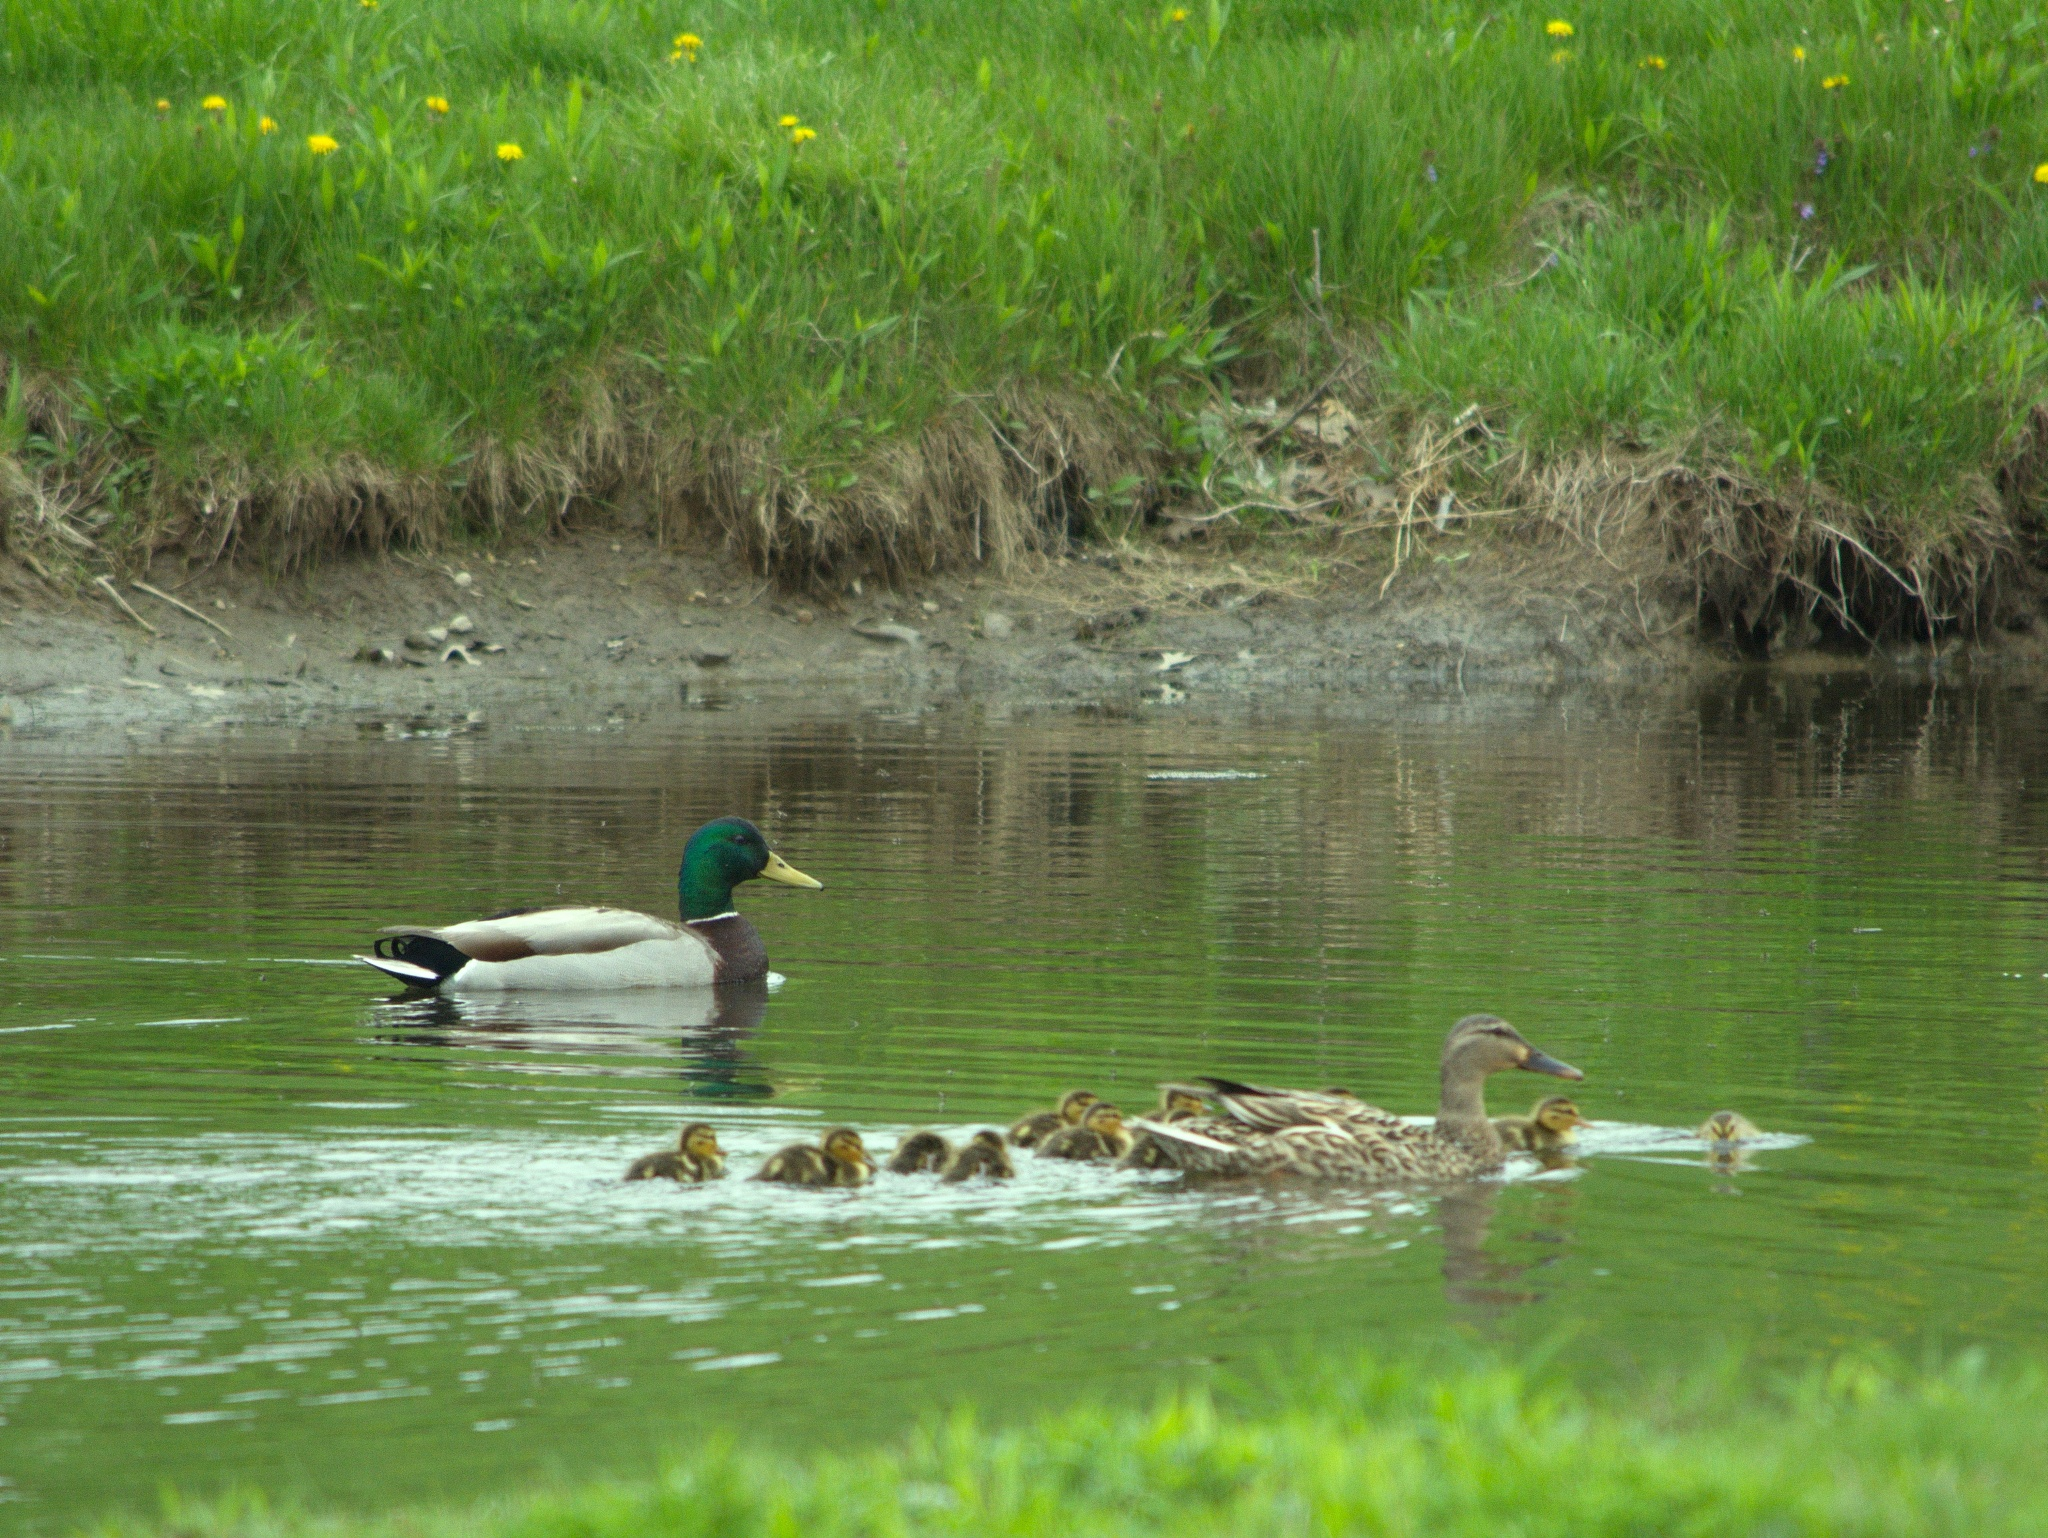 First Family Swim by Russ L Busse